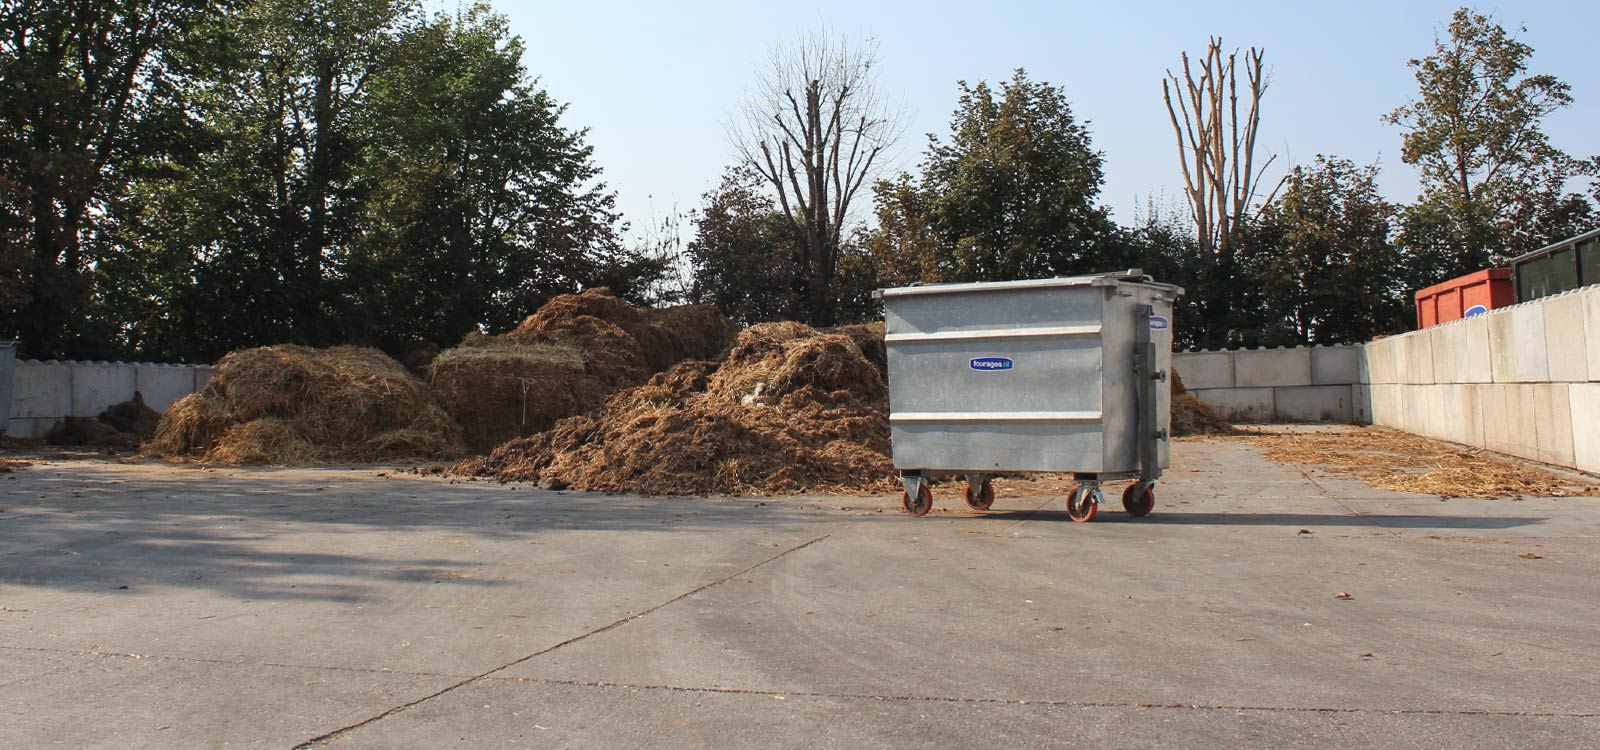 rolcontainer-ideale-oplossing-paardenmest-2-paarden